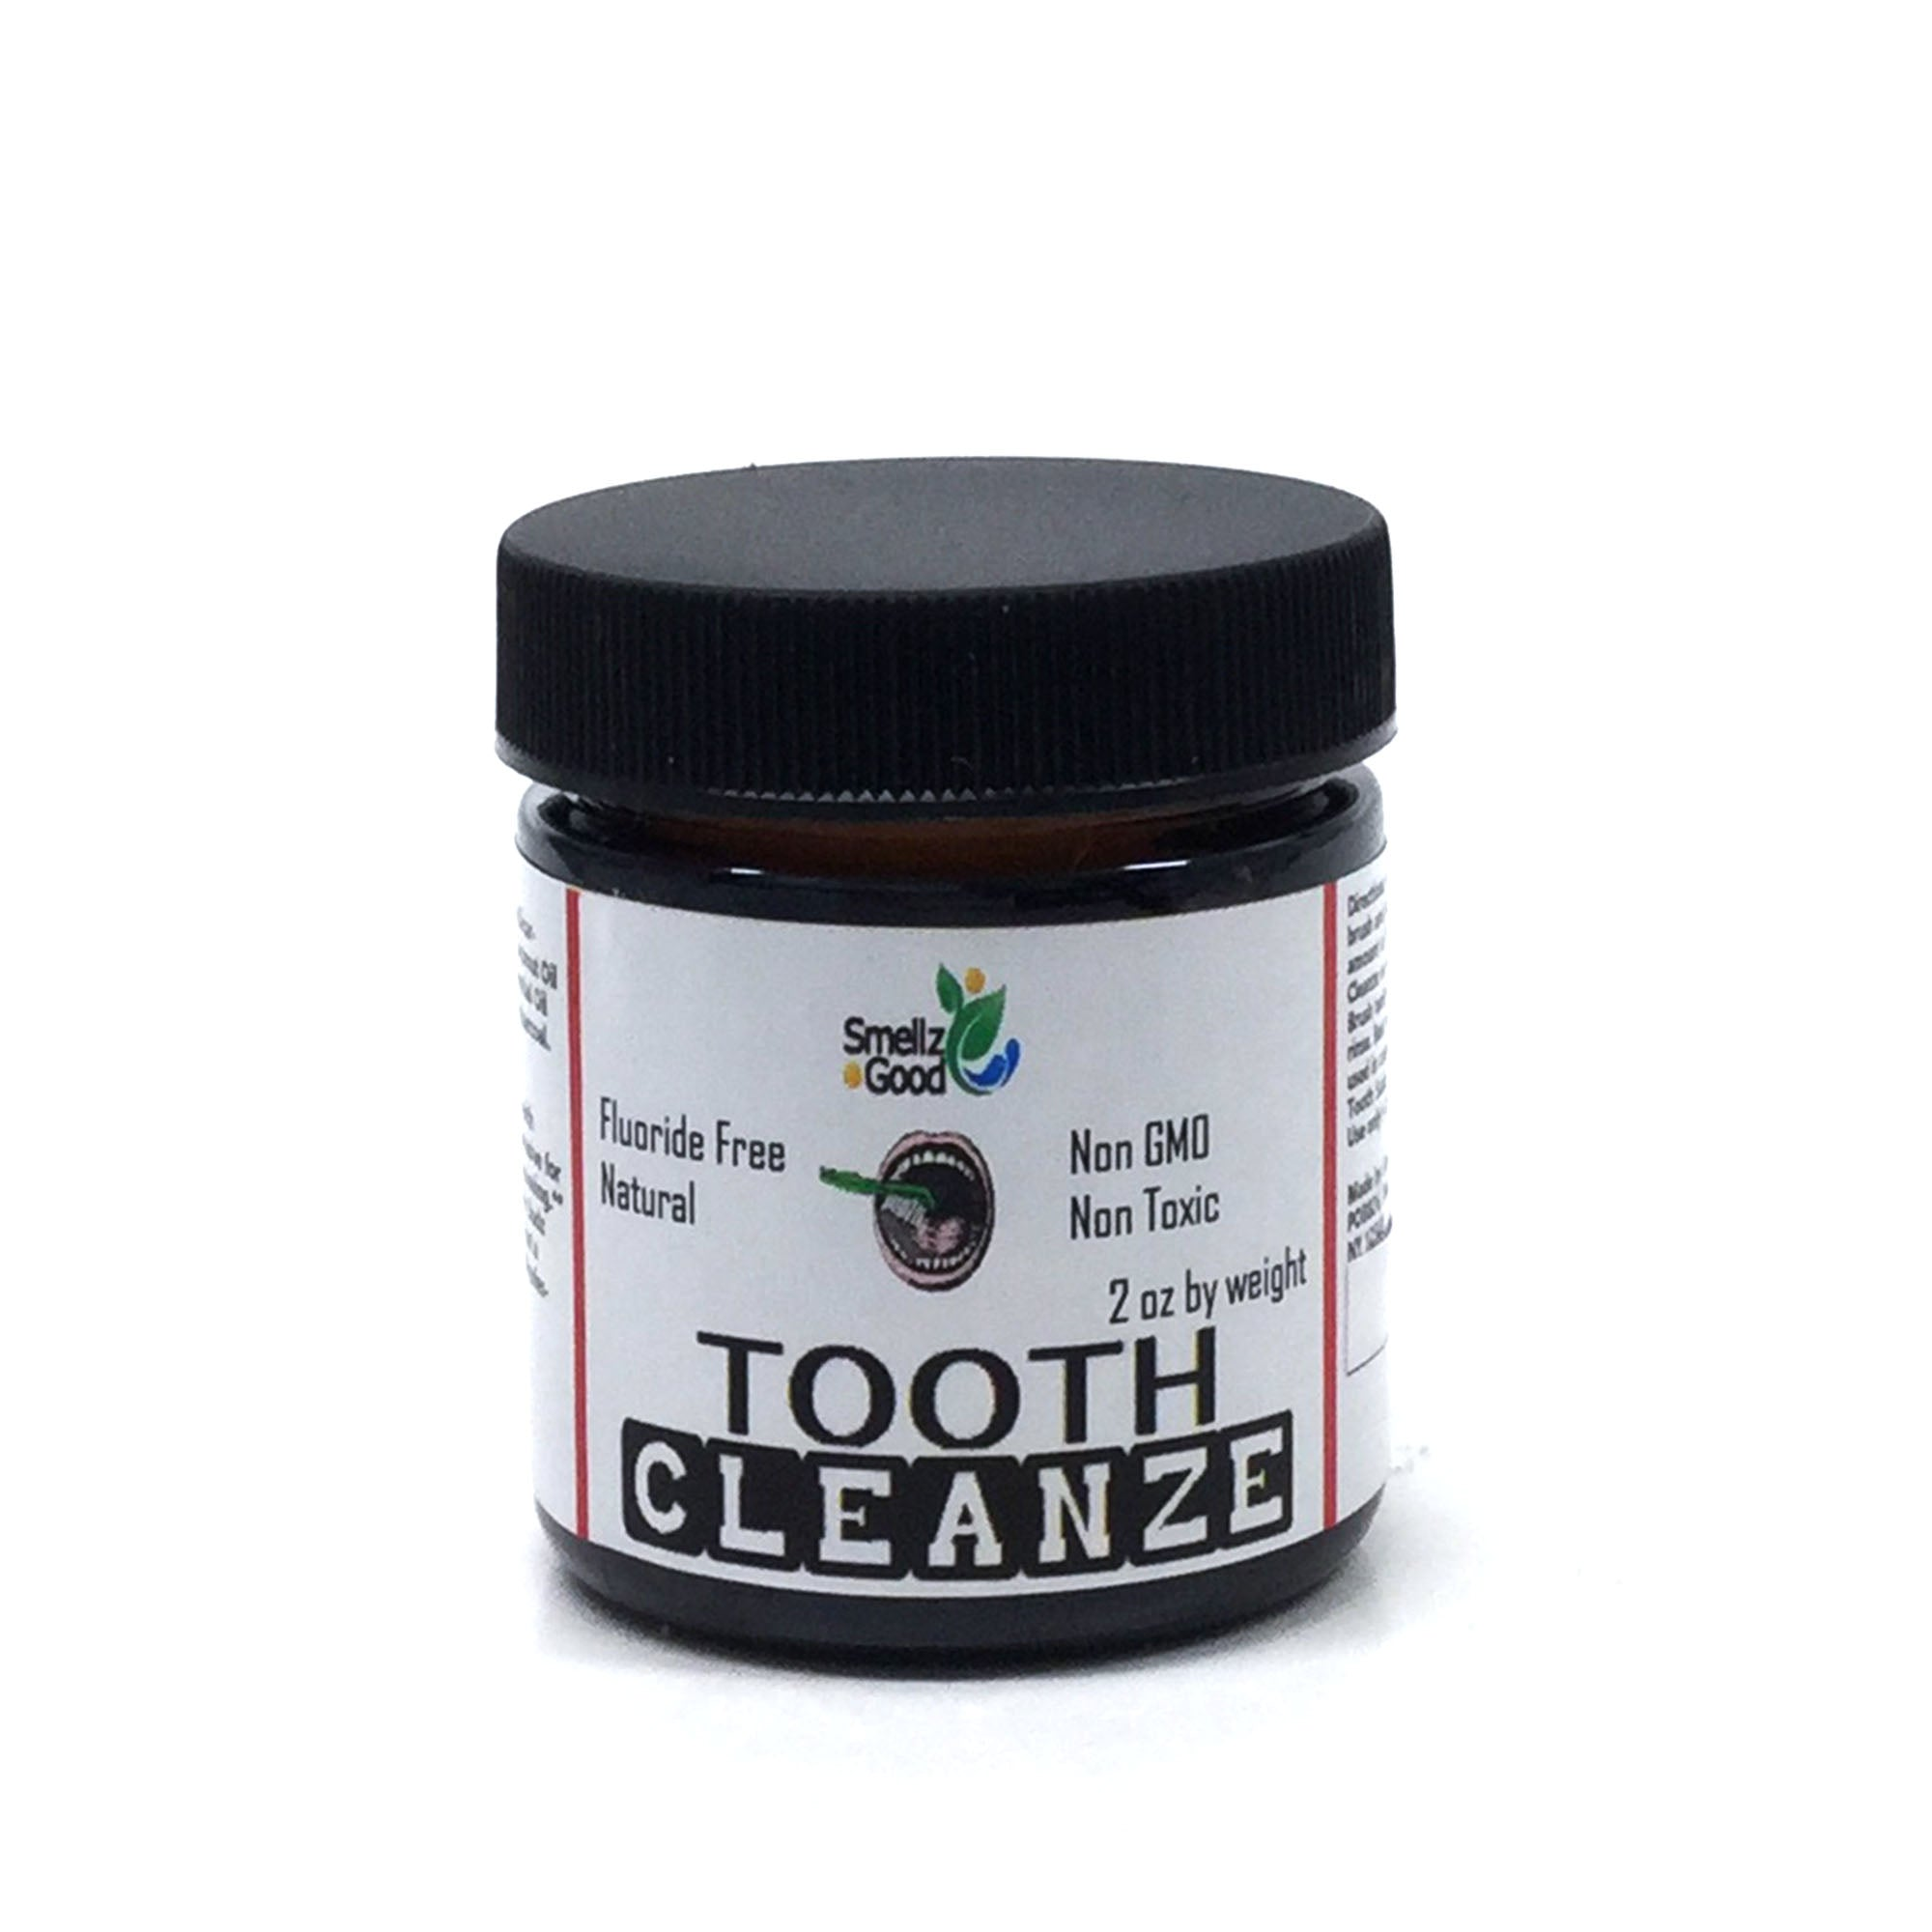 Tooth Cleanze | Peppermint